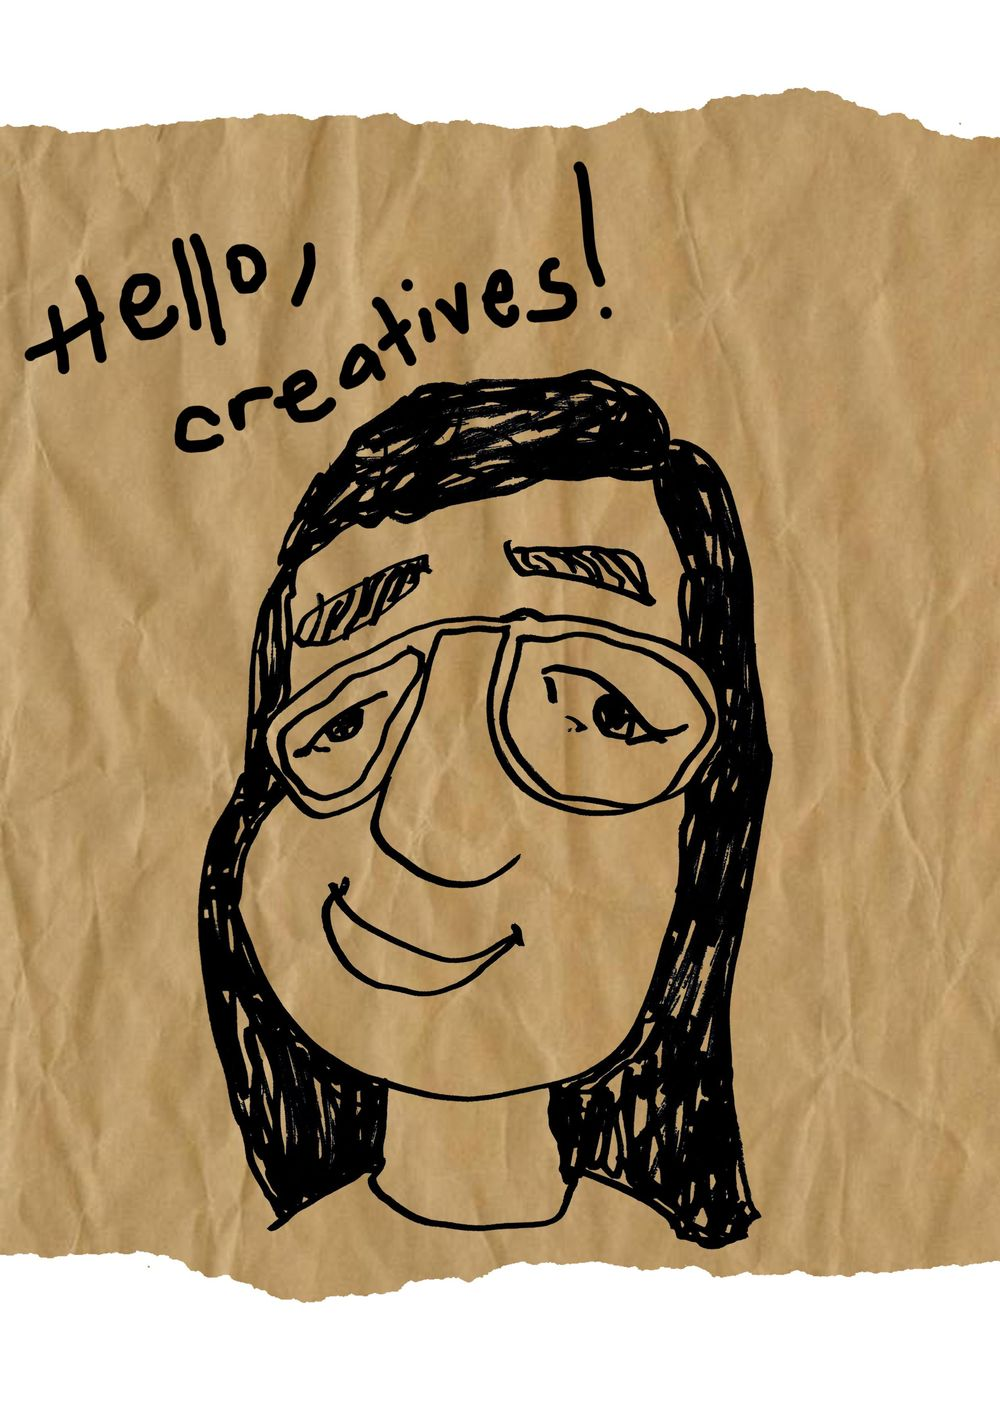 Self-portrait with my less dominant hand (left) - image 1 - student project